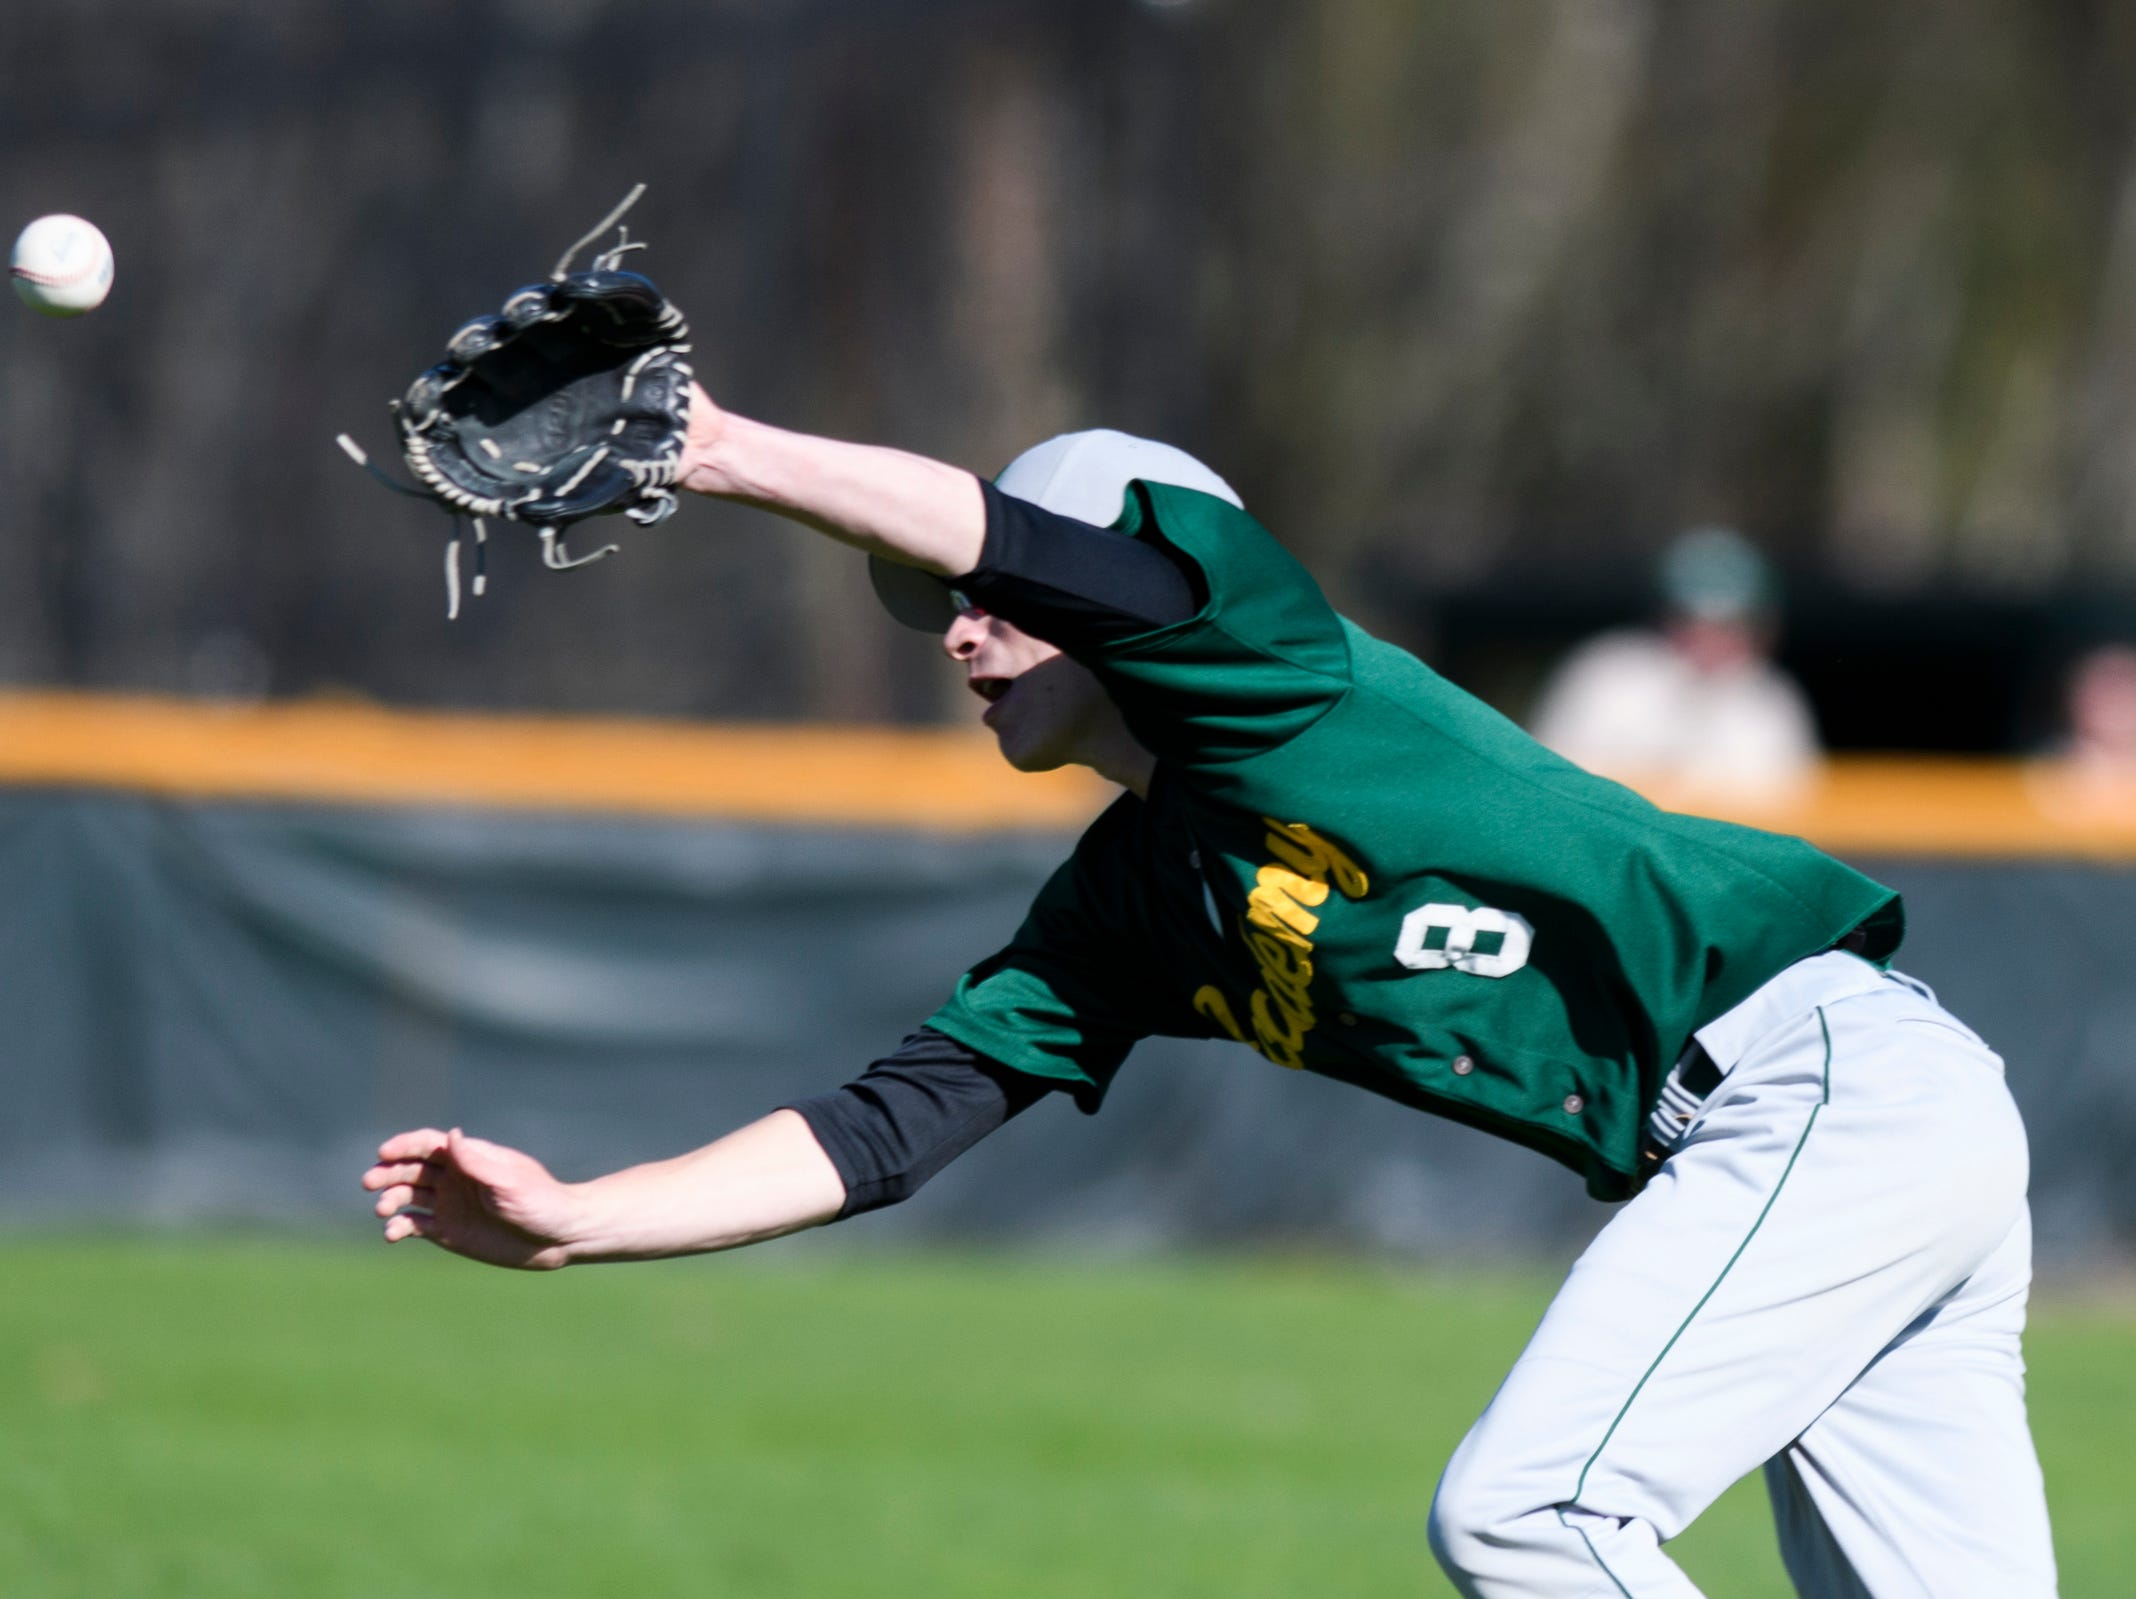 BFA's Jacob Beware (8) dives to try an catch the fly ball during the high school baseball game between BFA St. Albans and Rice at Rice Memorial High School on Wednesday afternoon May 8, 2019 in South Burlington, Vermont.